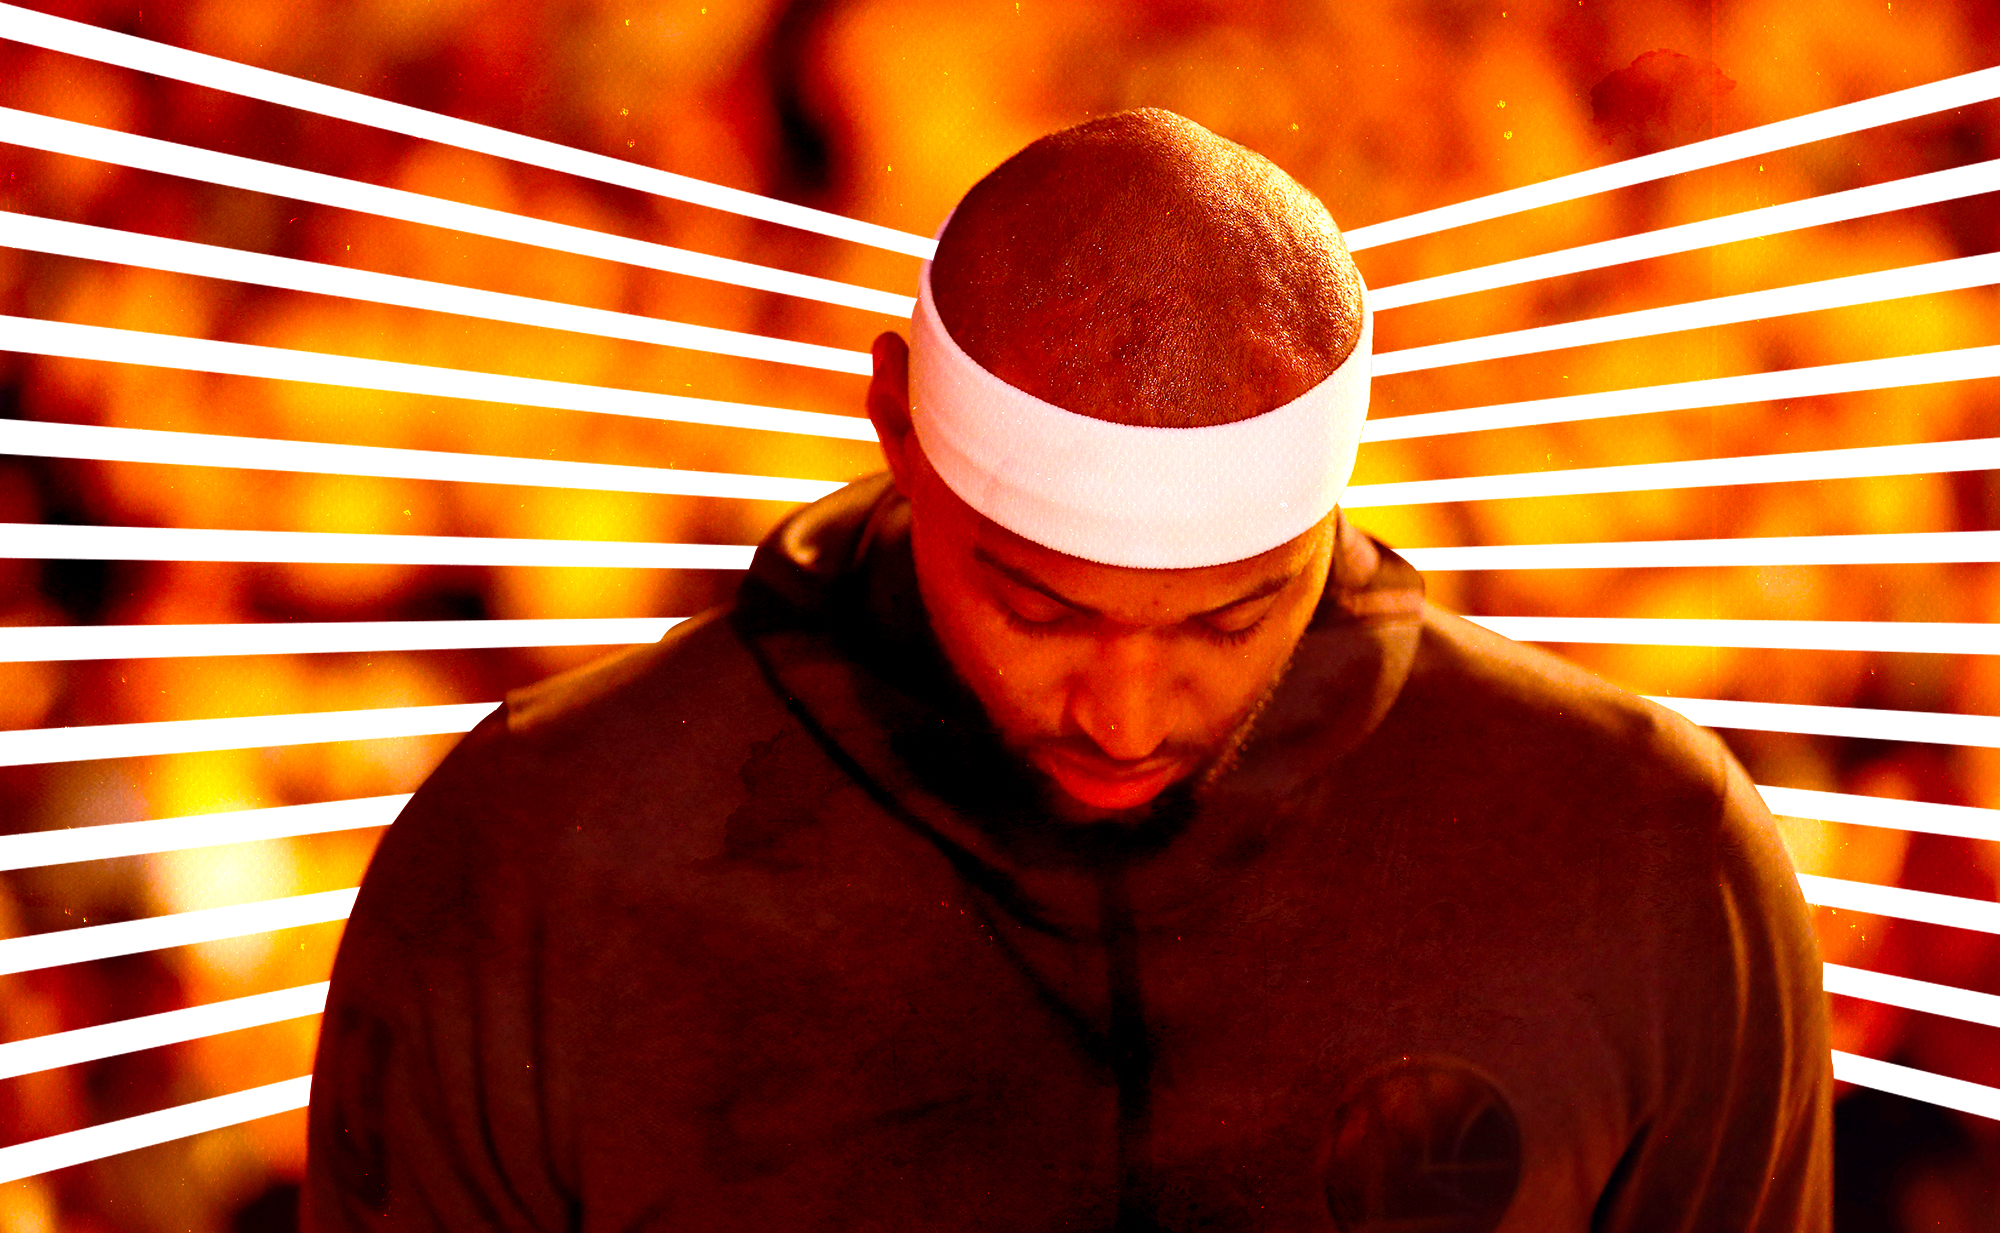 DeMarcus Cousins has moved on from his nickname and so should we